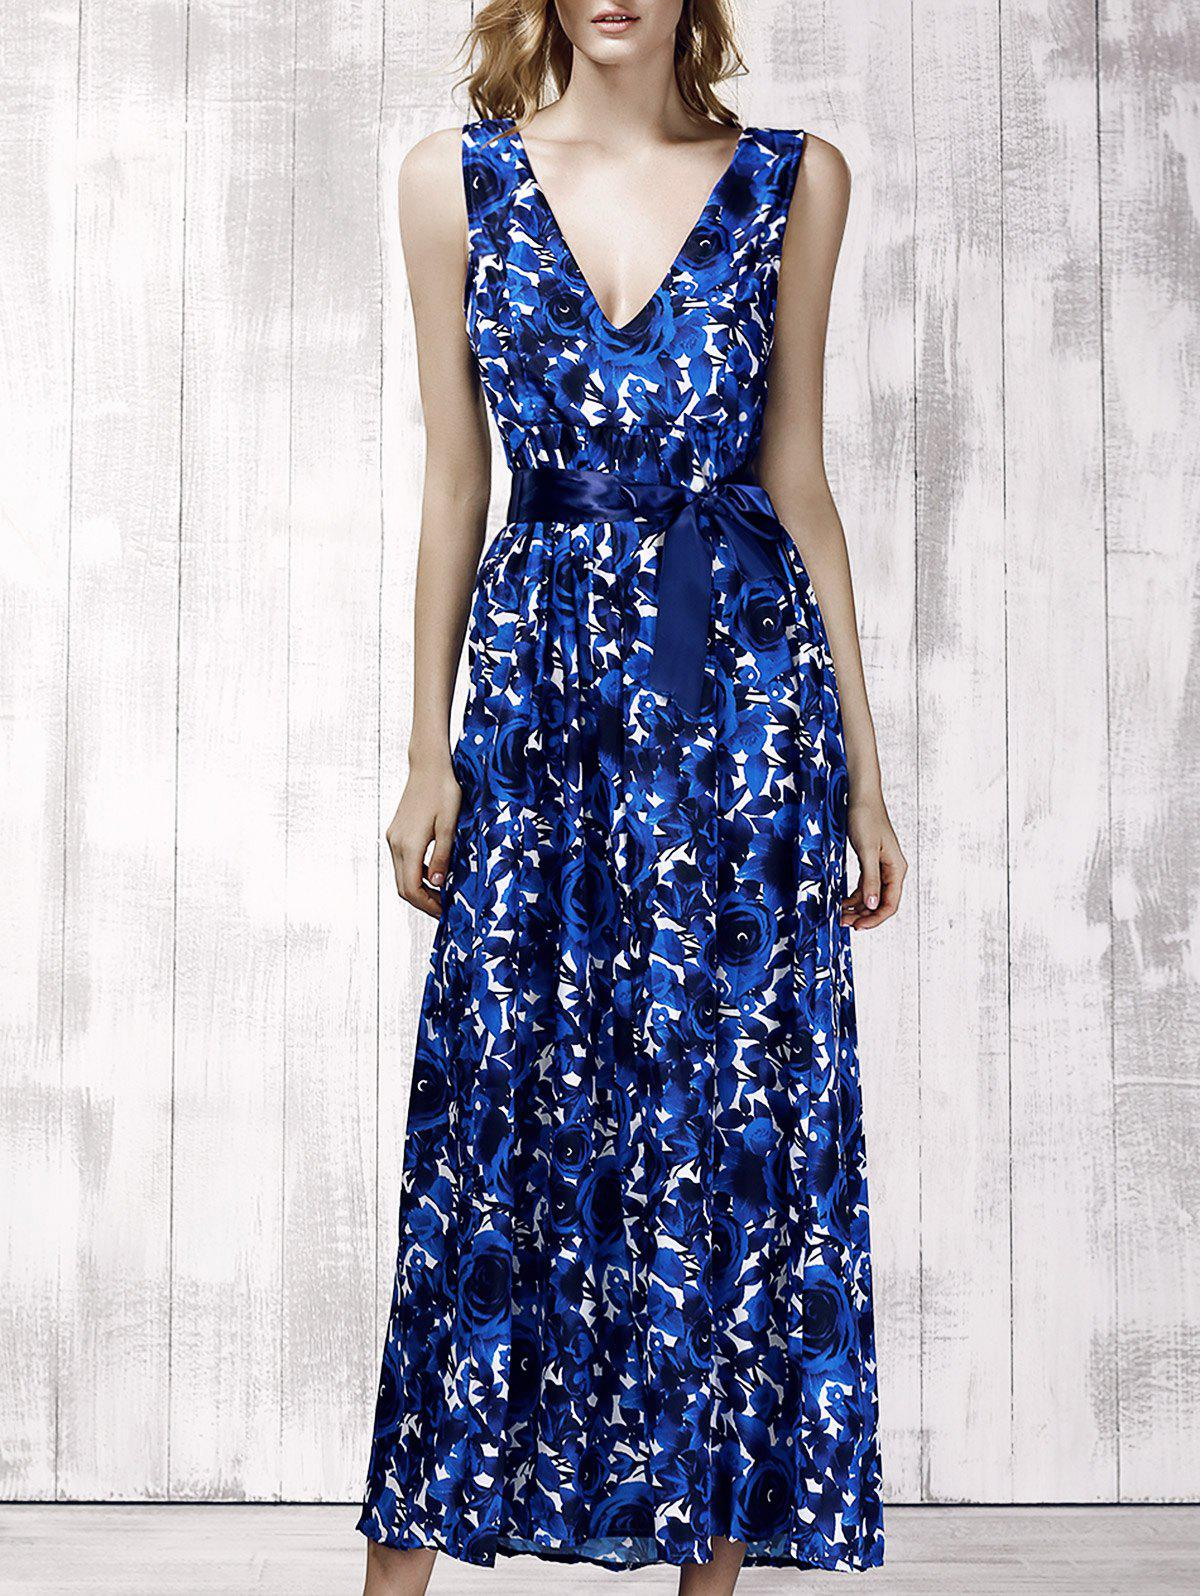 Stylish Women's Plunging Neck Sleeveless Floral Print Maxi Dress - DEEP BLUE S